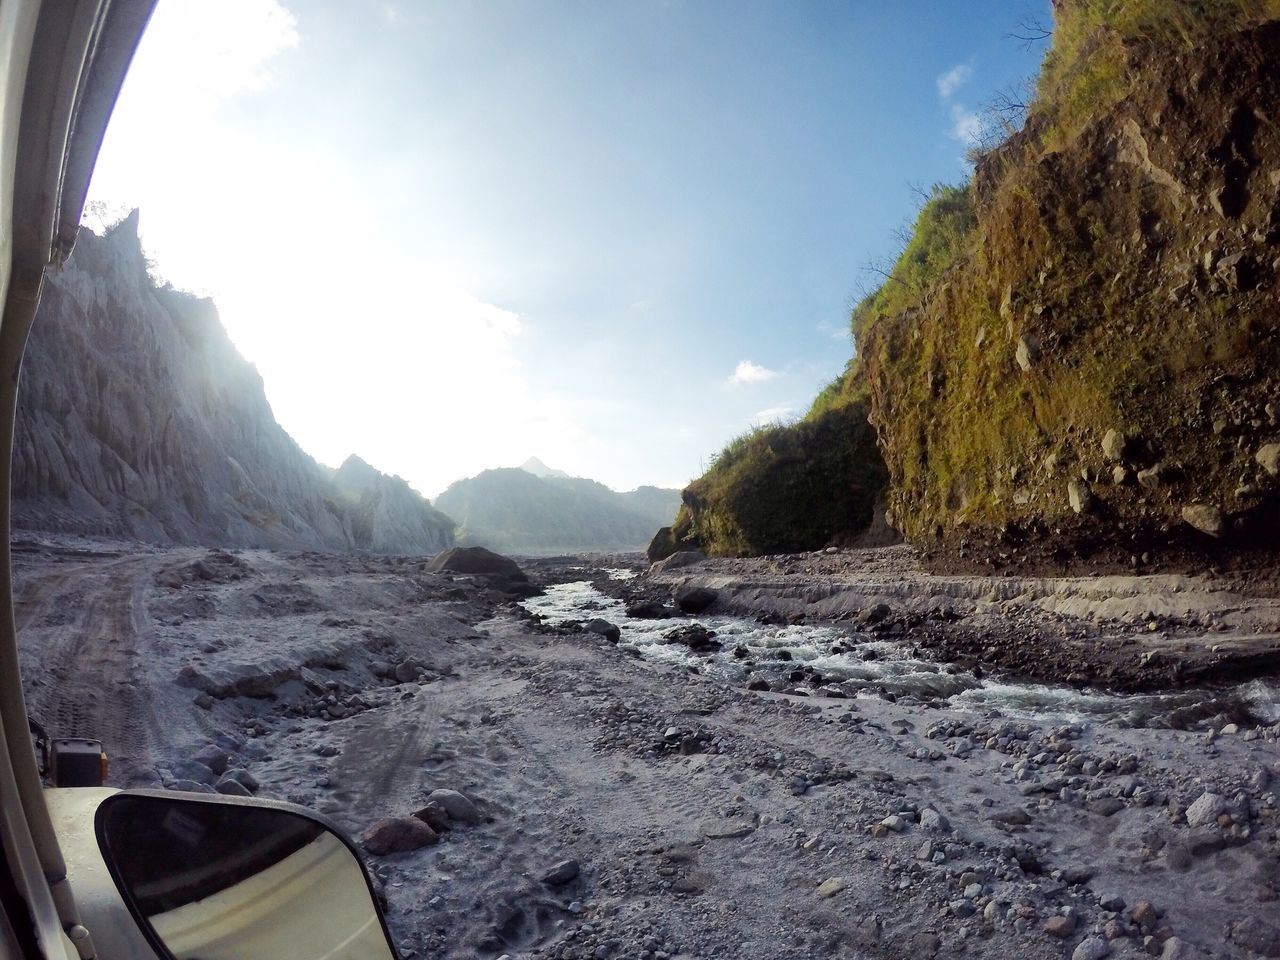 unfiltered shot, on the way to Mt. Pinatubo, Philippines TravelPhilippines Choosephilippines Lakbaypinas Itsmorefuninthephilippines Nature Offroading Adventure Explorephilippines Unfiltered